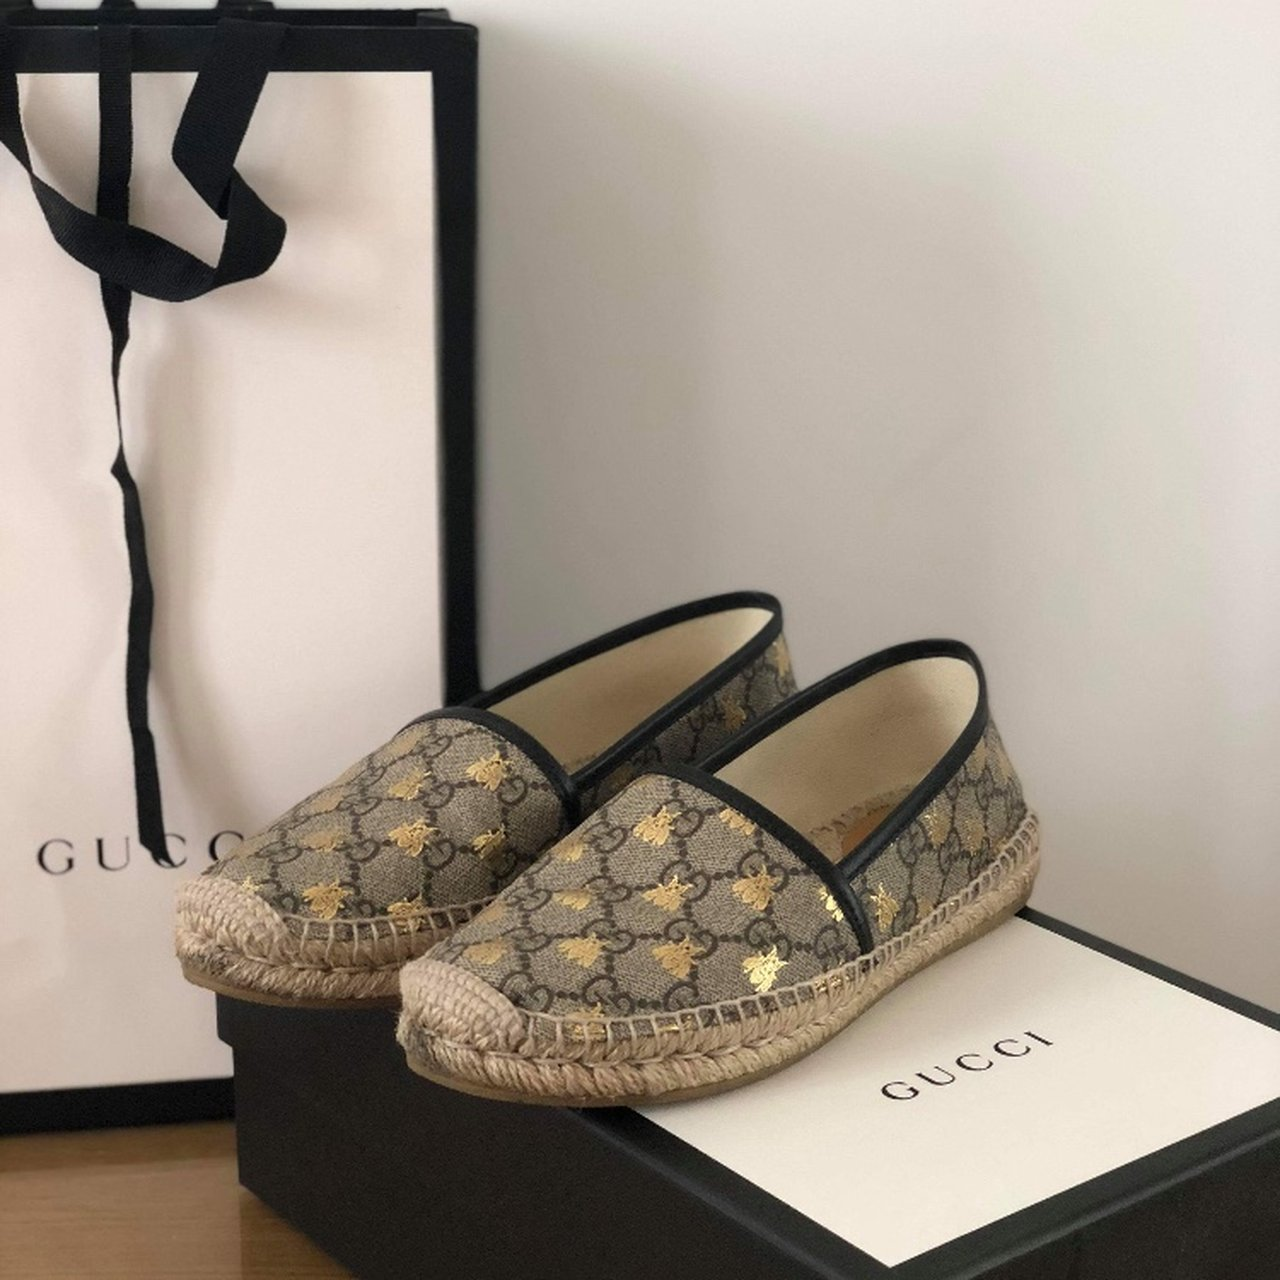 71dbc8b0fe0 GUCCI ESPADRILLES- worn twice in perfect condition